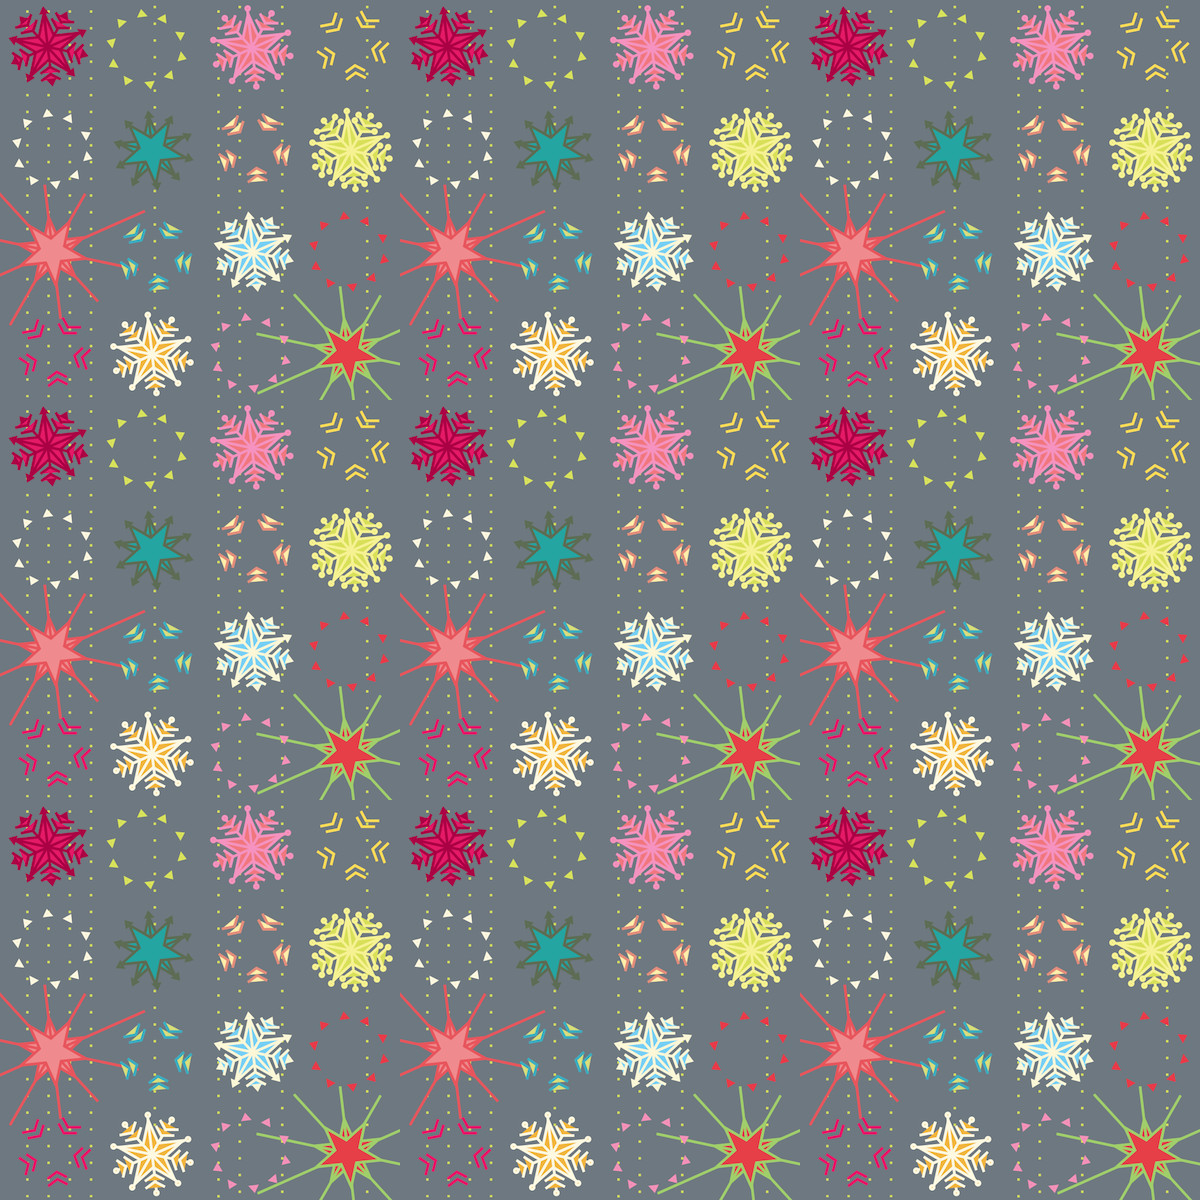 Free Printable Christmas Paper Free Digital Holiday Scrappbooking Paper Snow Wonder No2